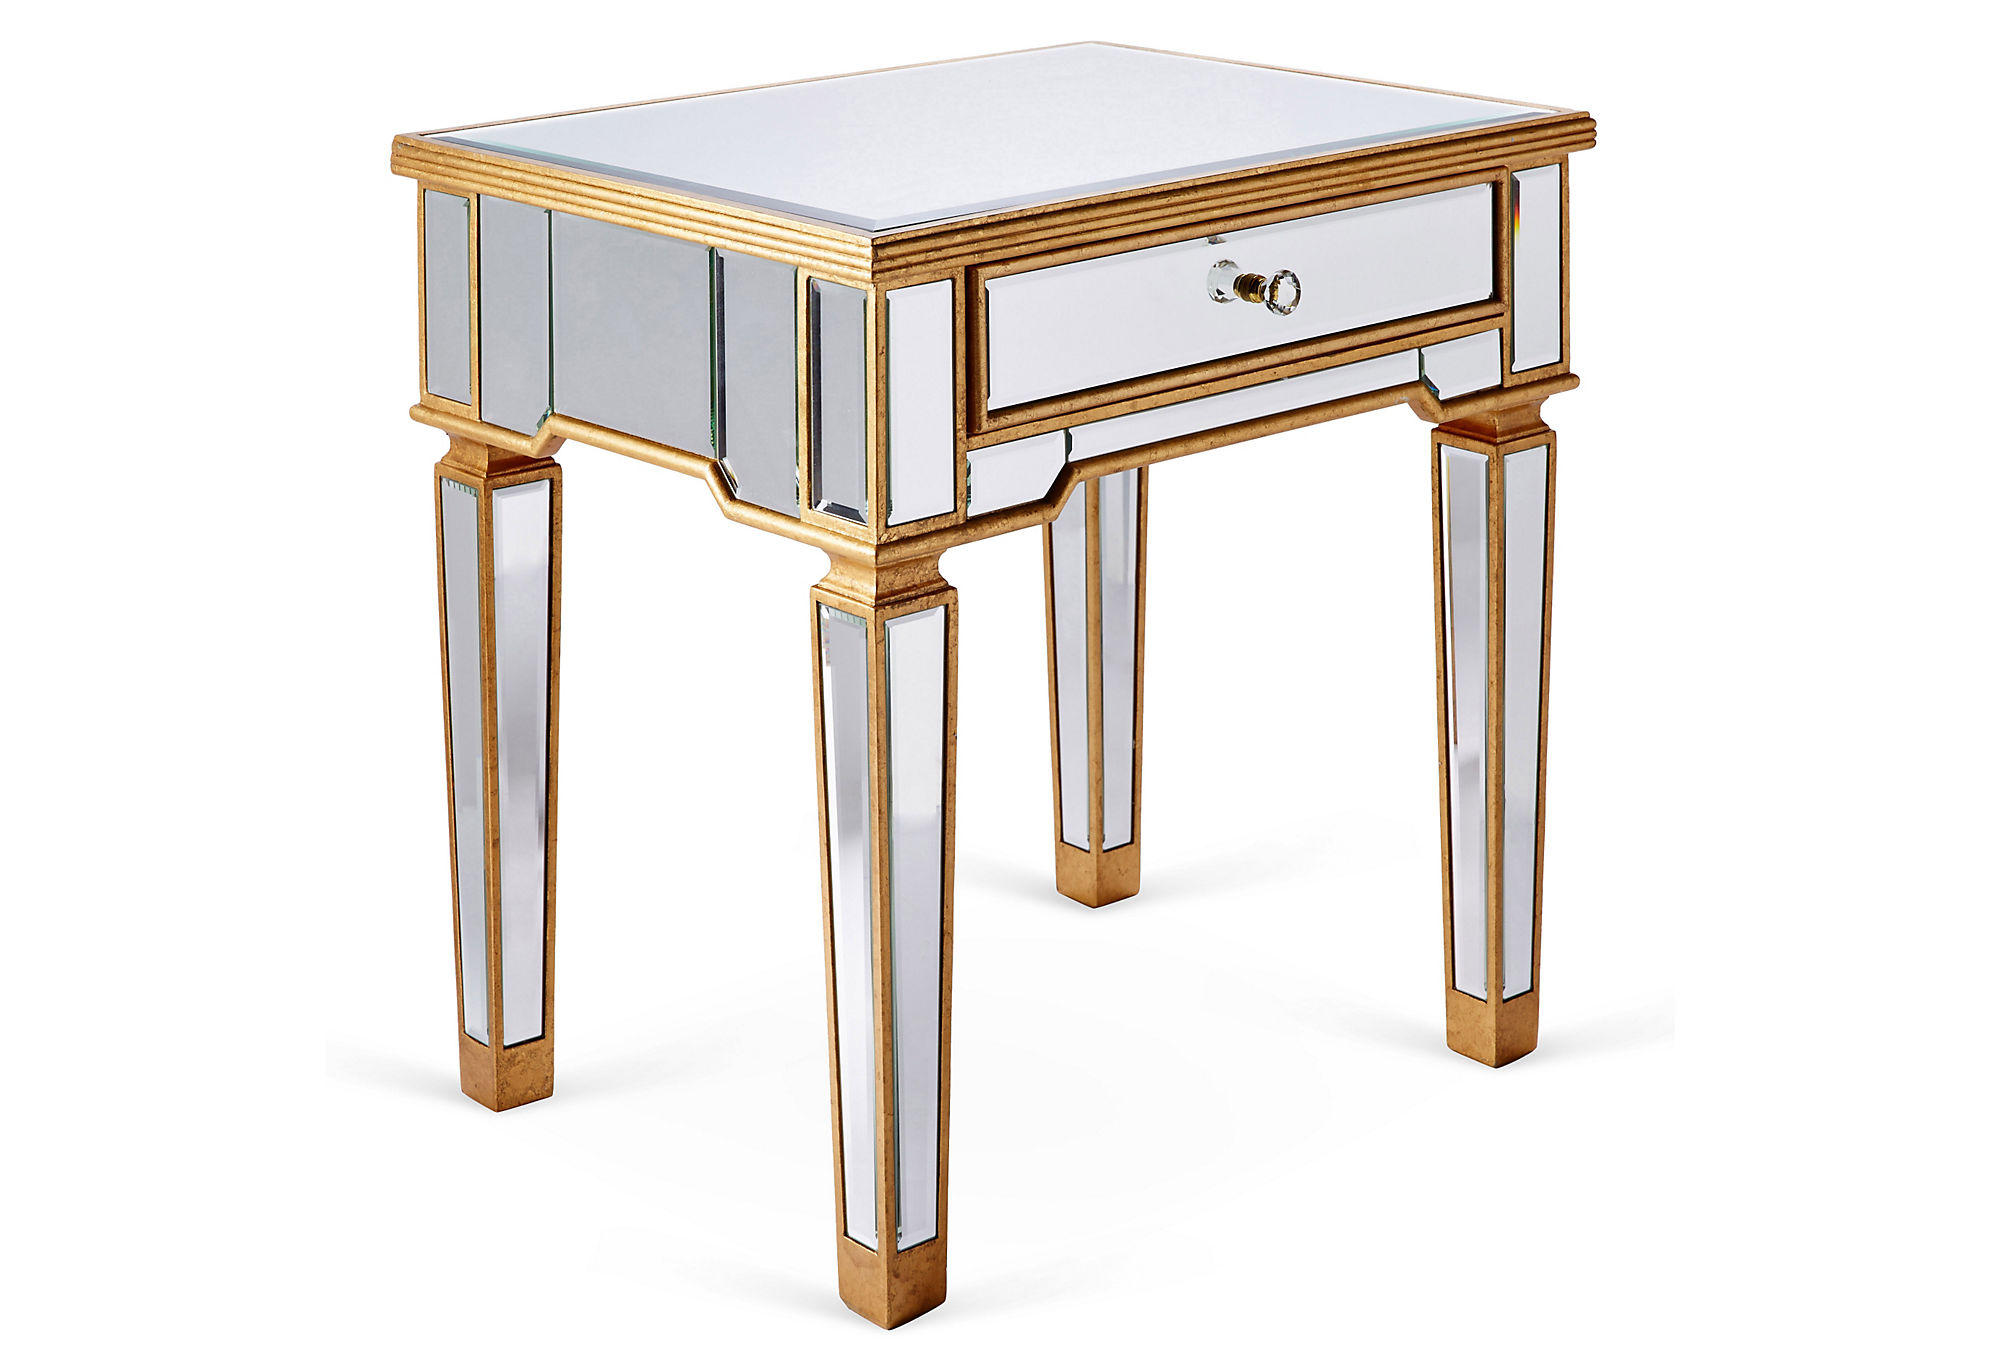 mirrored side table gold standard side from one kings lane. Black Bedroom Furniture Sets. Home Design Ideas